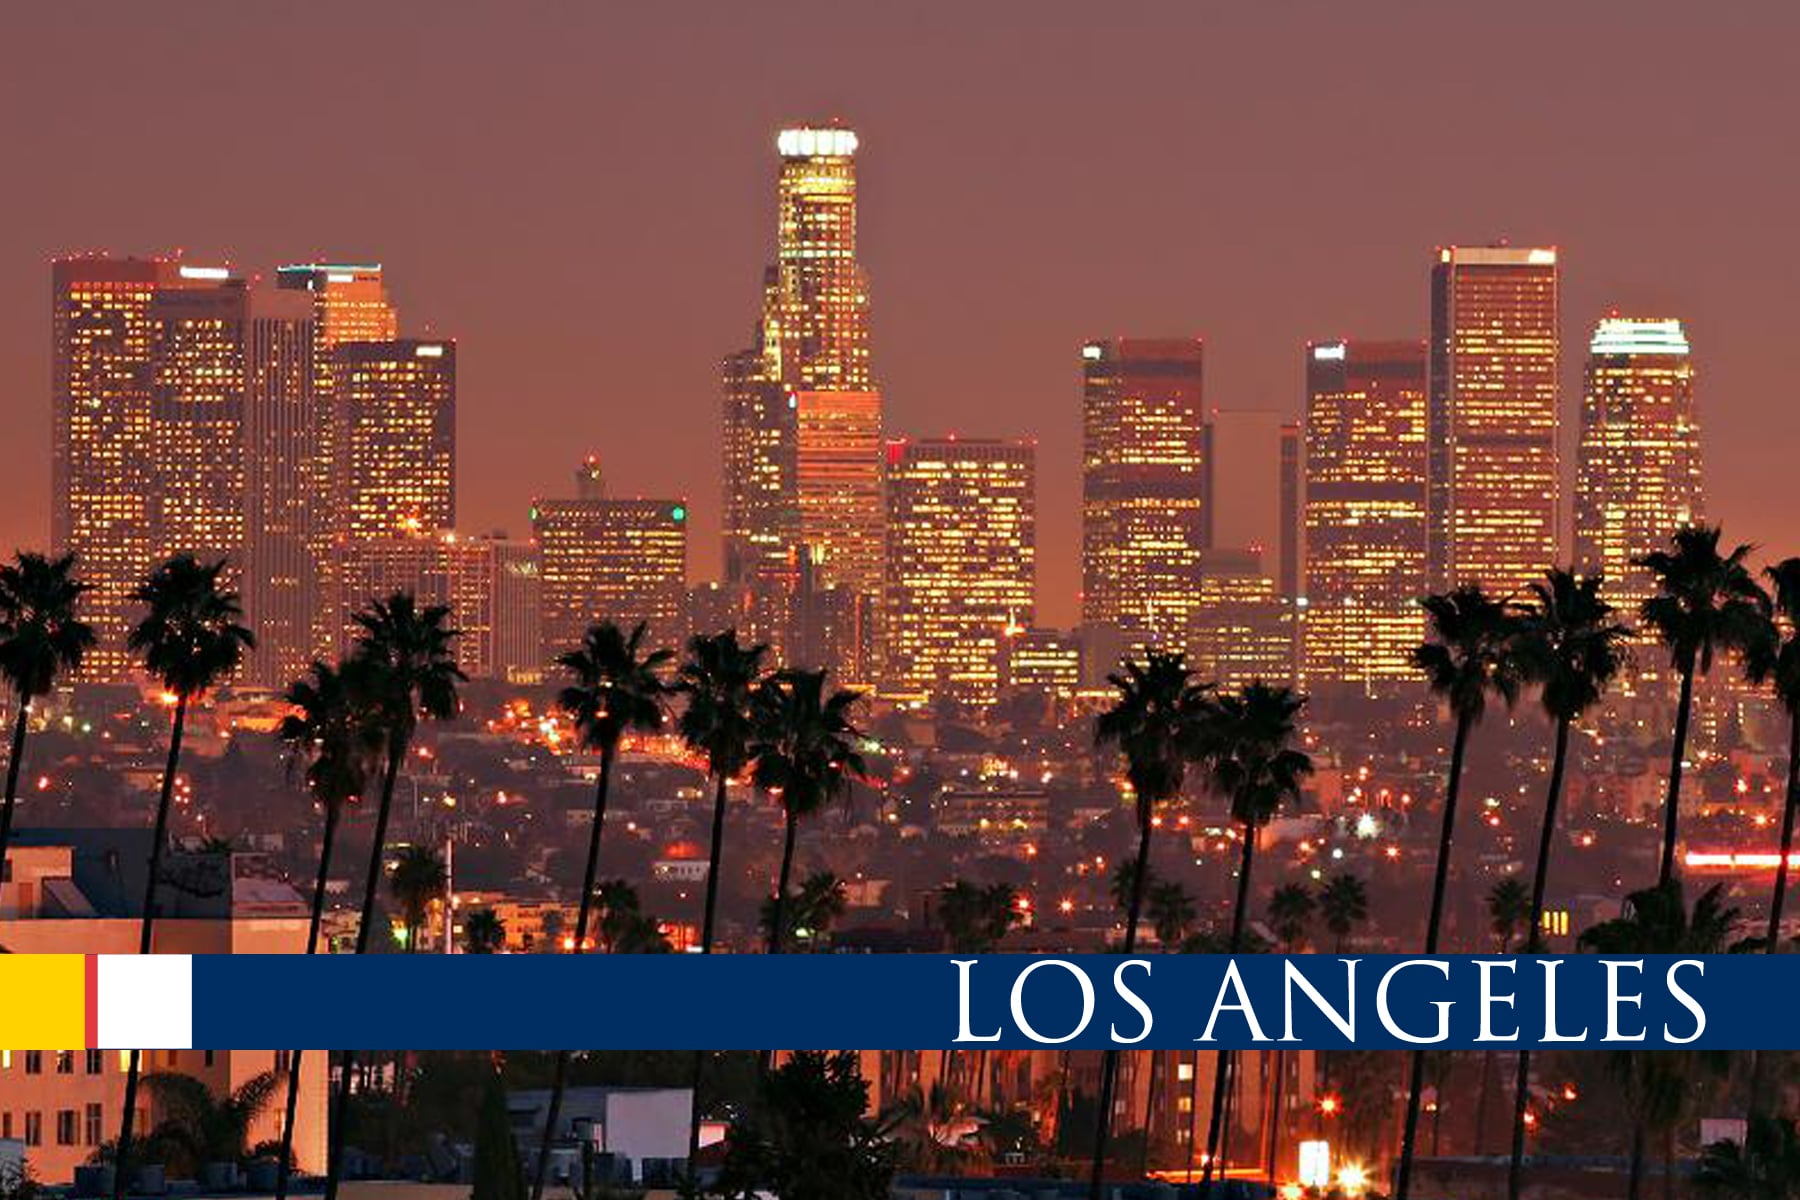 Musica para sus fiestas los angeles california usa - Housse de couette los angeles ...